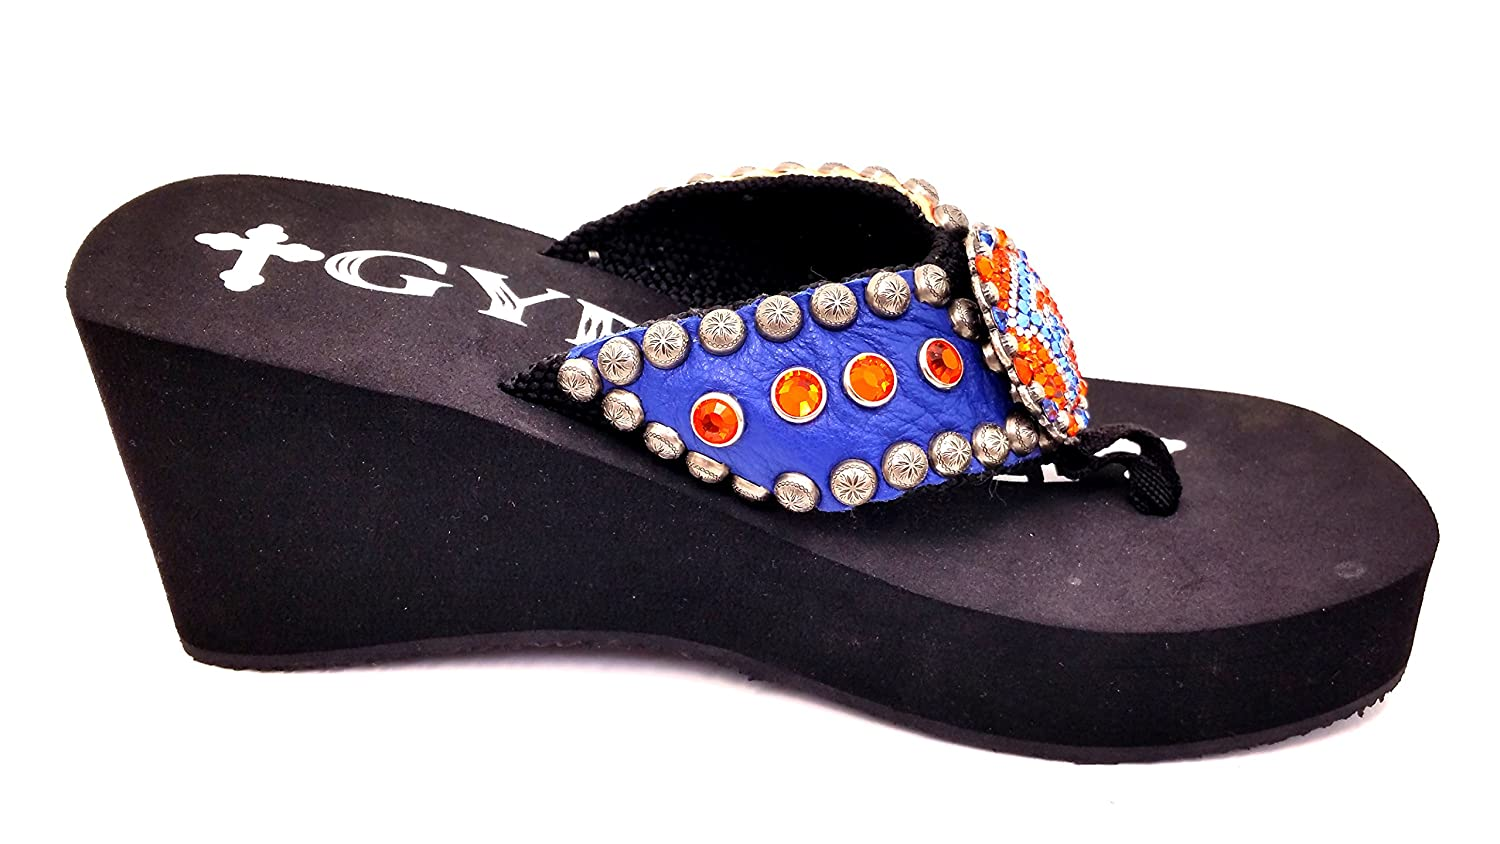 a8555cd74 Soule florida gators heel with concho and swarovski crystals blue flip flops  jpg 1500x844 Gypsy soule